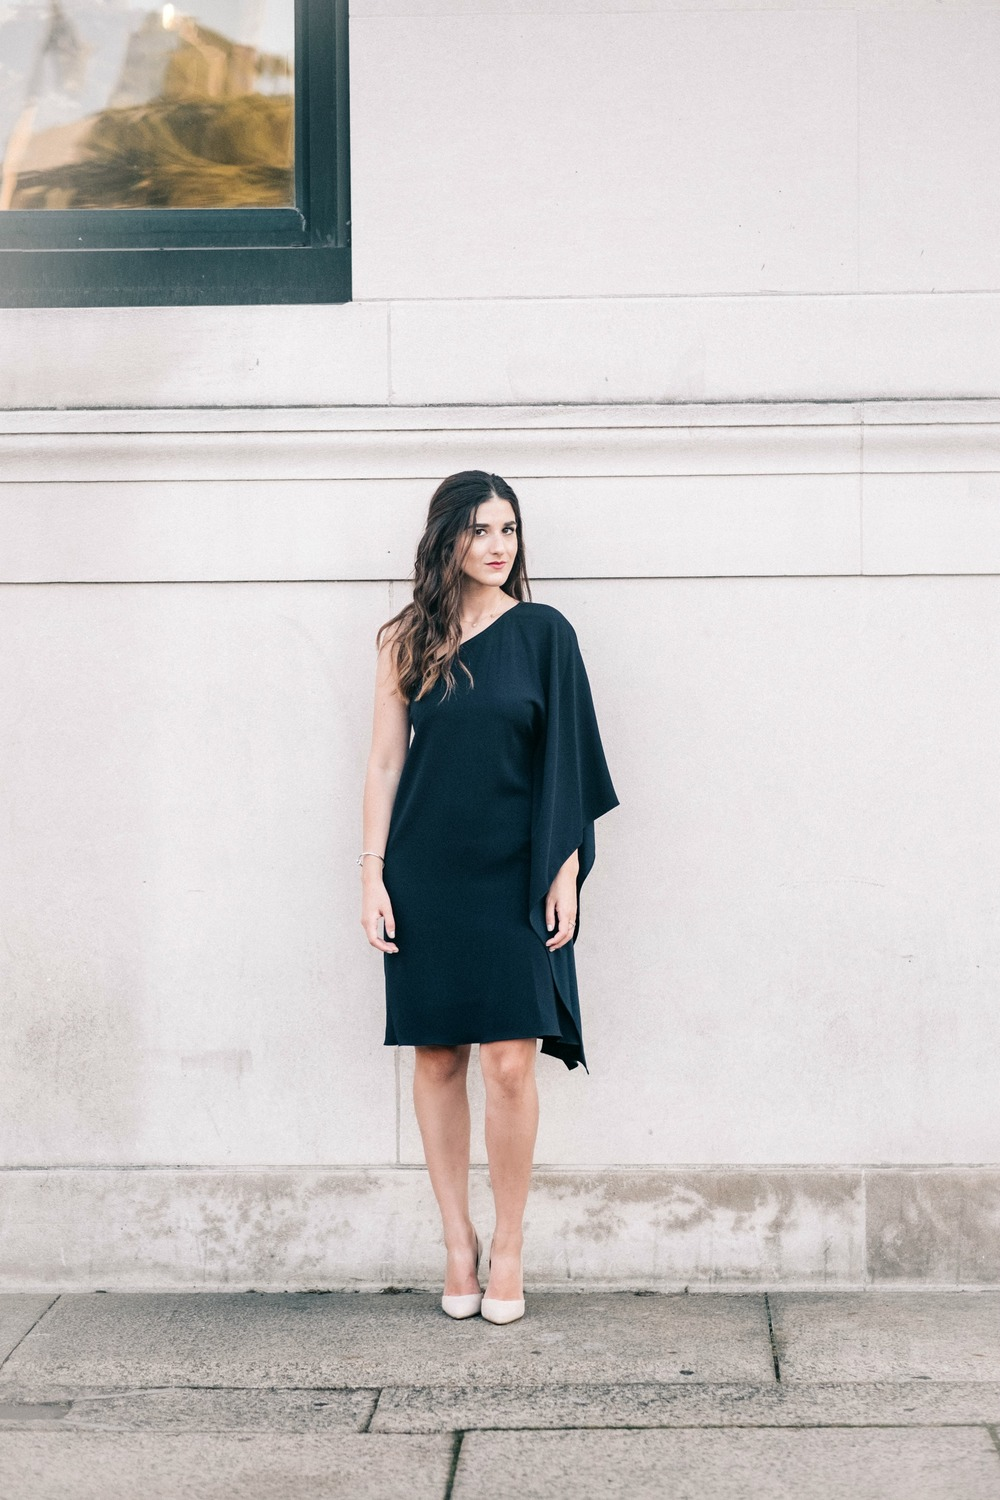 One Shoulder Dress Jay Godgrey Louboutins & Love Fashion Blog Esther Santer NYC Street Style Blogger Outfit OOTD Trendy Girl Women Elegant Fancy Attire Hair Inspo Photoshoot Nude Heels Steve Madden Gold Jewelry Navy Shopping Pretty Beautiful Shoes Buy.jpg